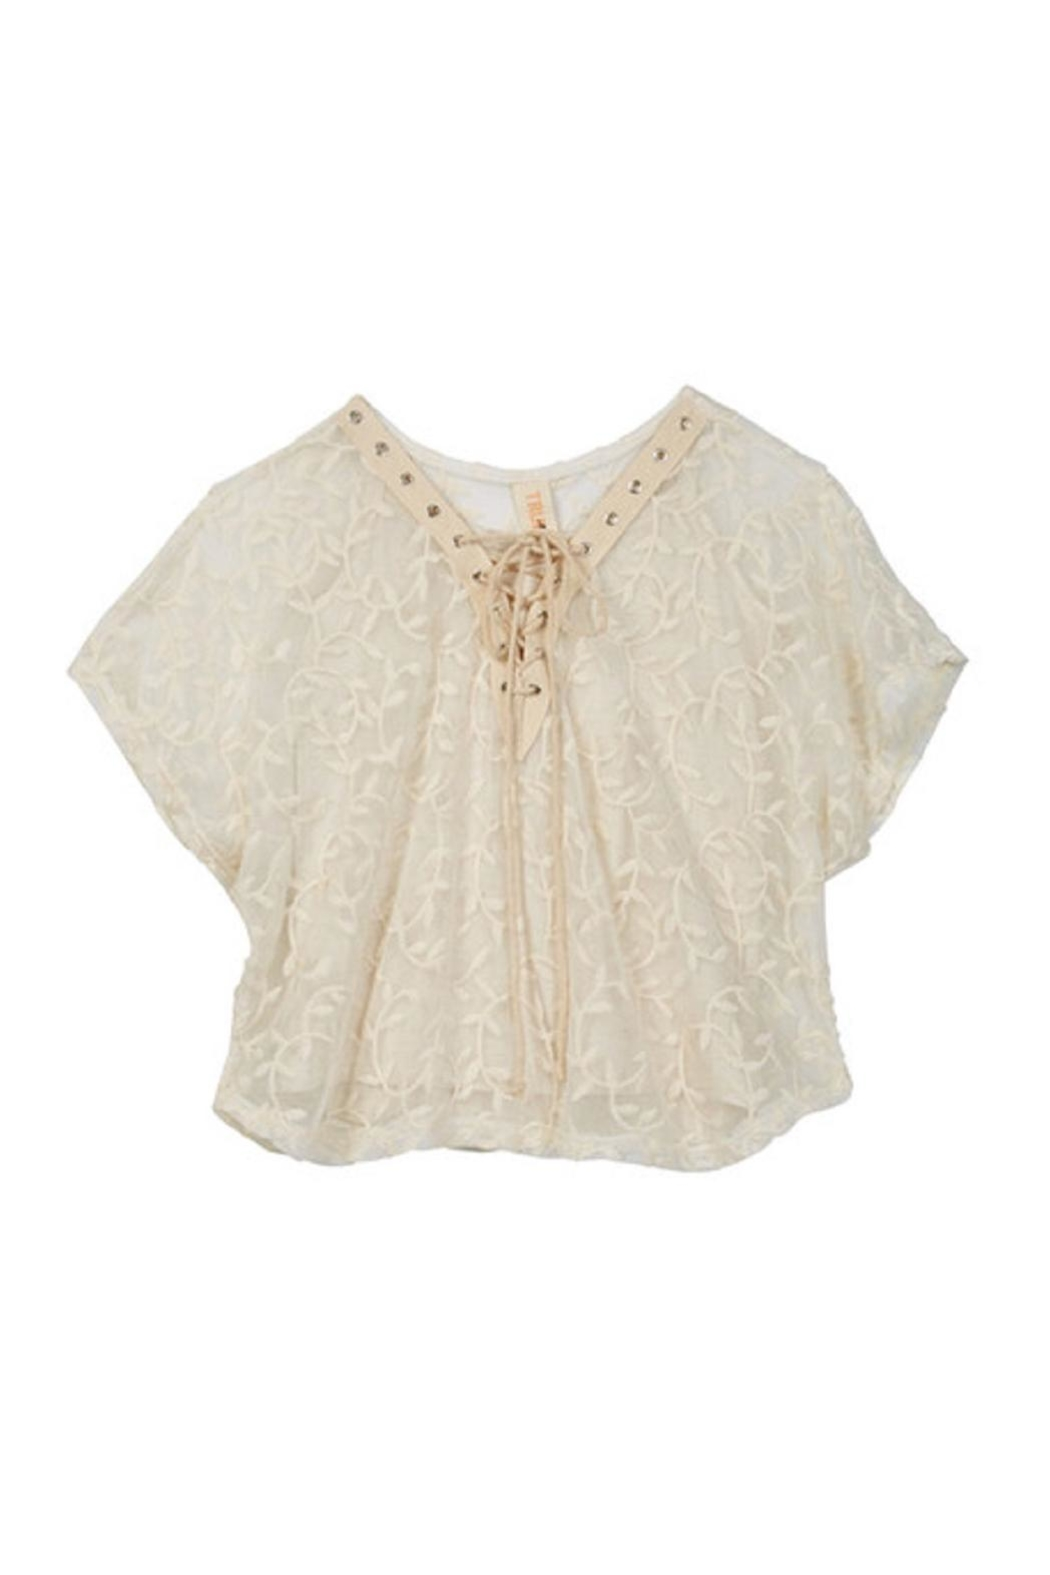 Truluv Vining Lace Top - Main Image